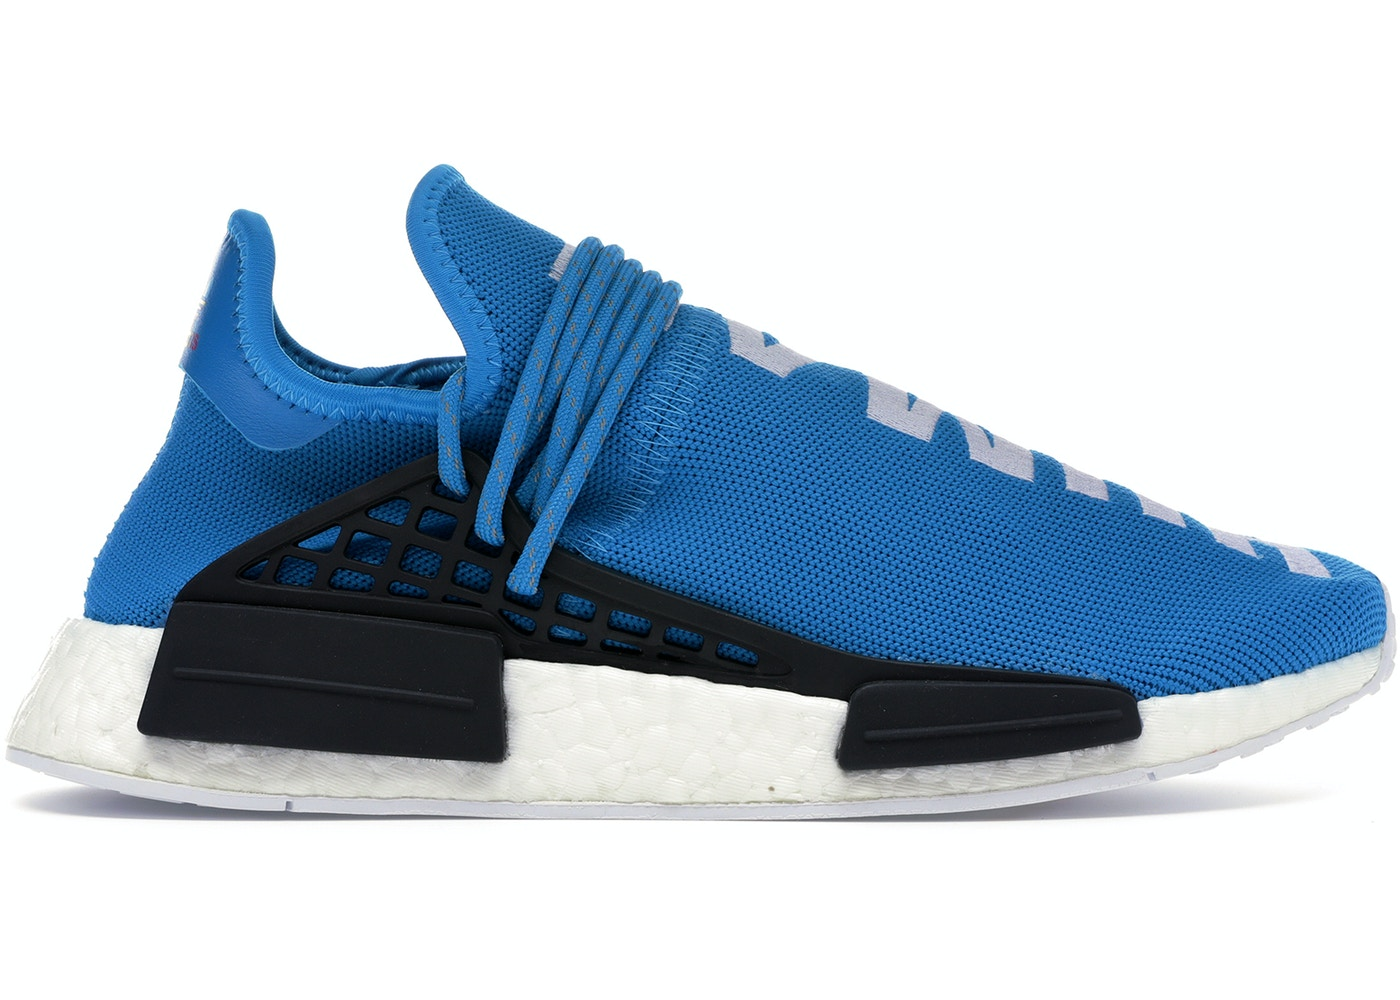 a818657f74ef adidas NMD Shoes - Price Premium